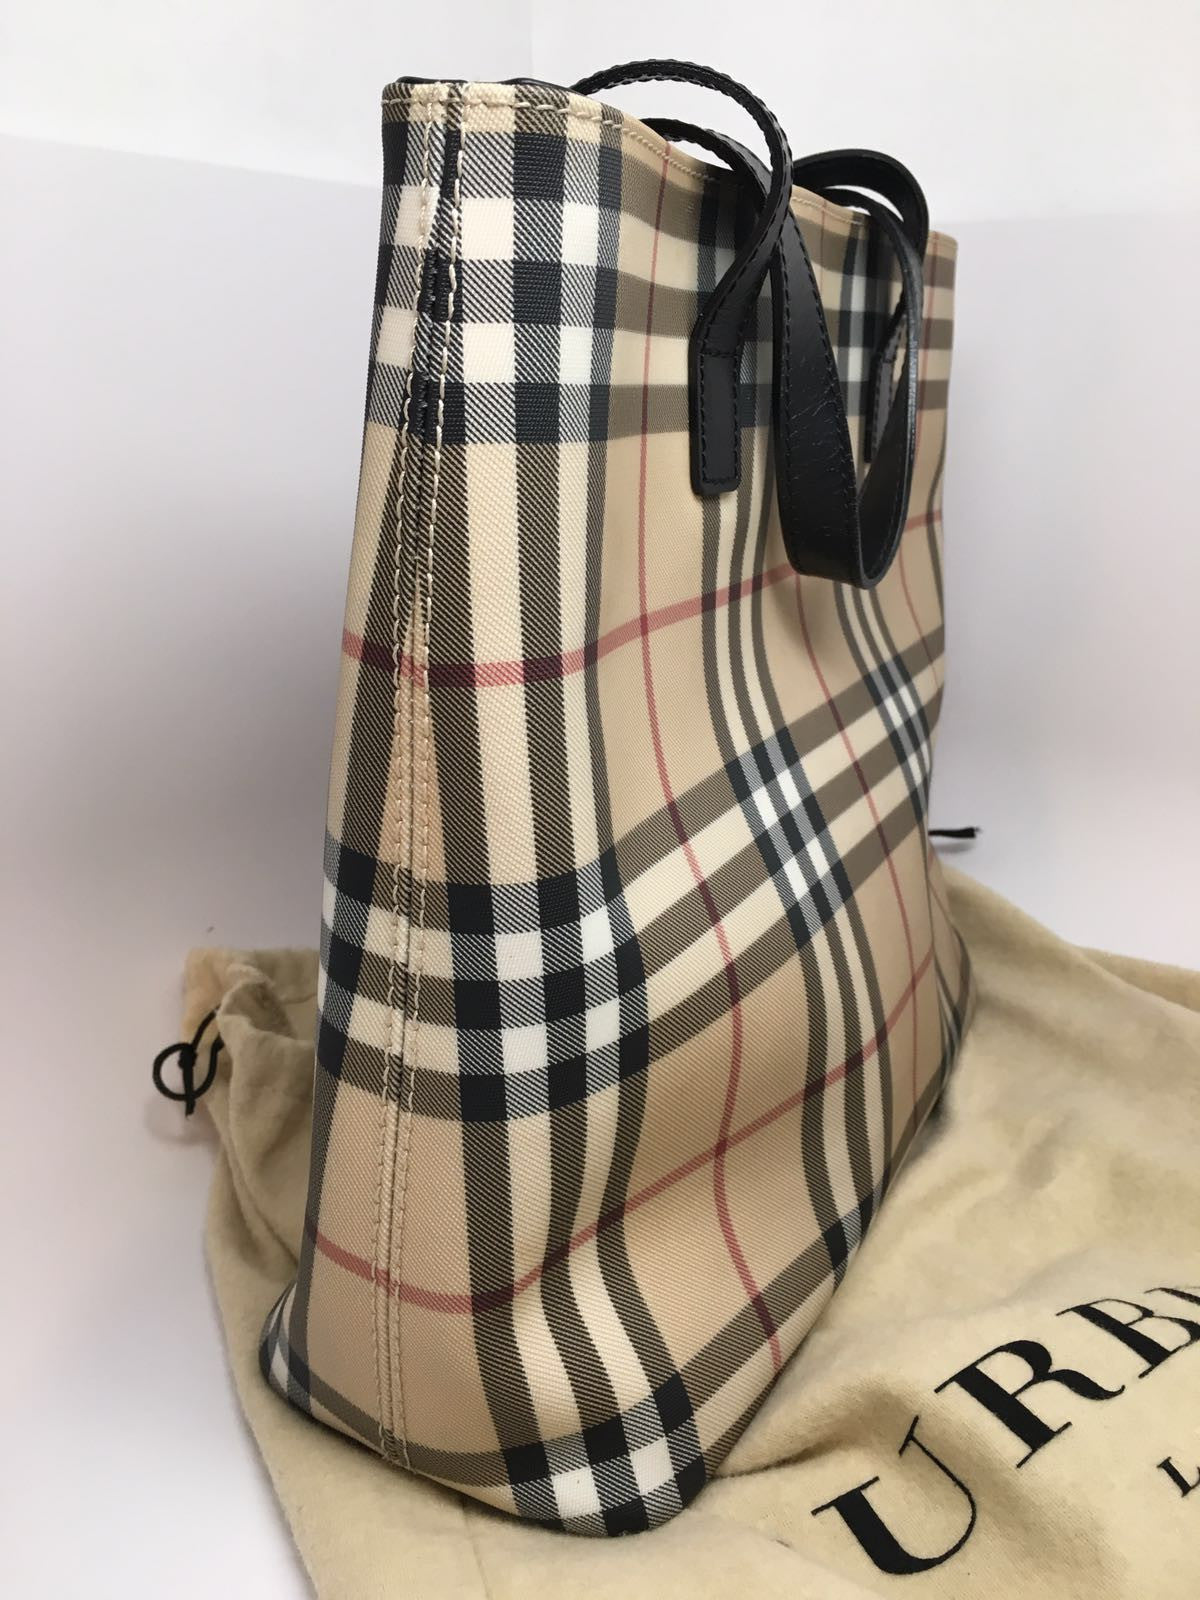 BURBERRY NOVA CHECK COATED CANVAS SHOPPING TOTE